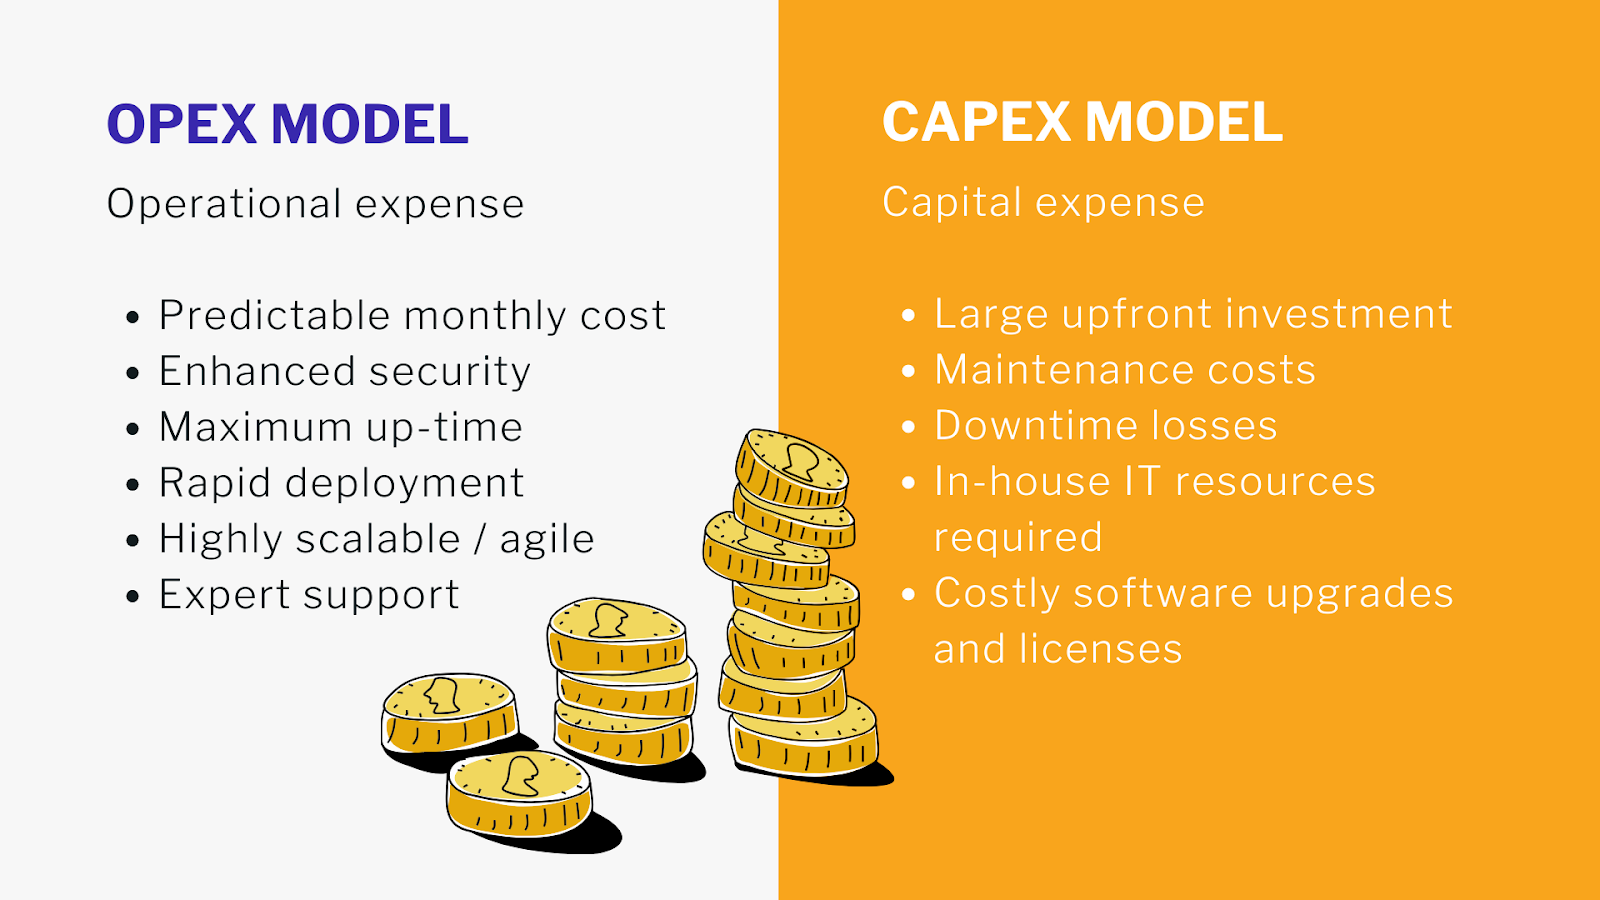 Difference between Opex and Capex model